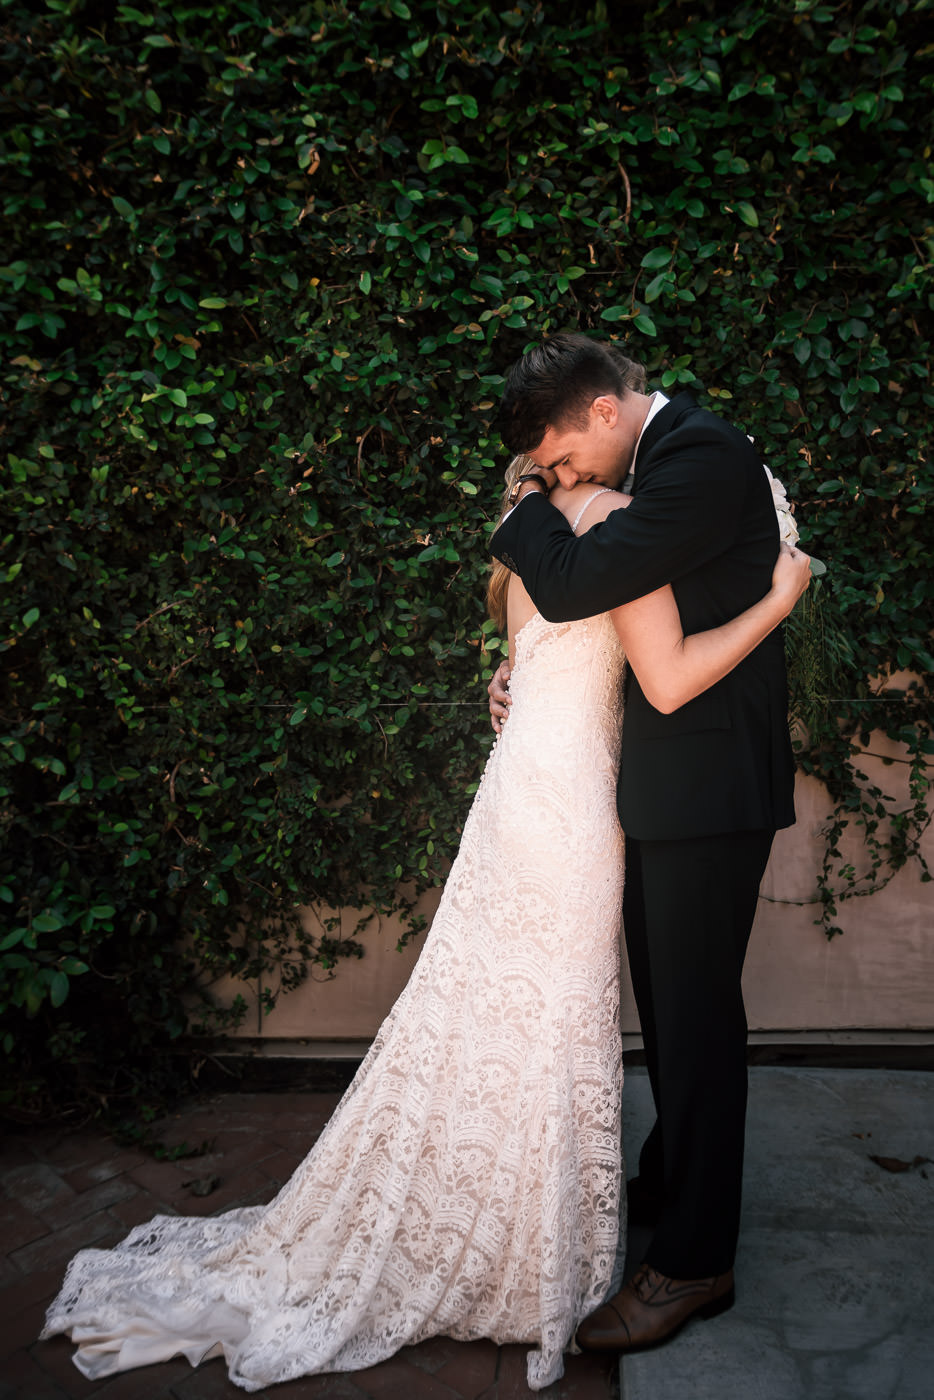 these two soon to be newlyweds hugged each other tightly as their joy overflowed after their first look in front of an ivy wall before the wedding in temecula